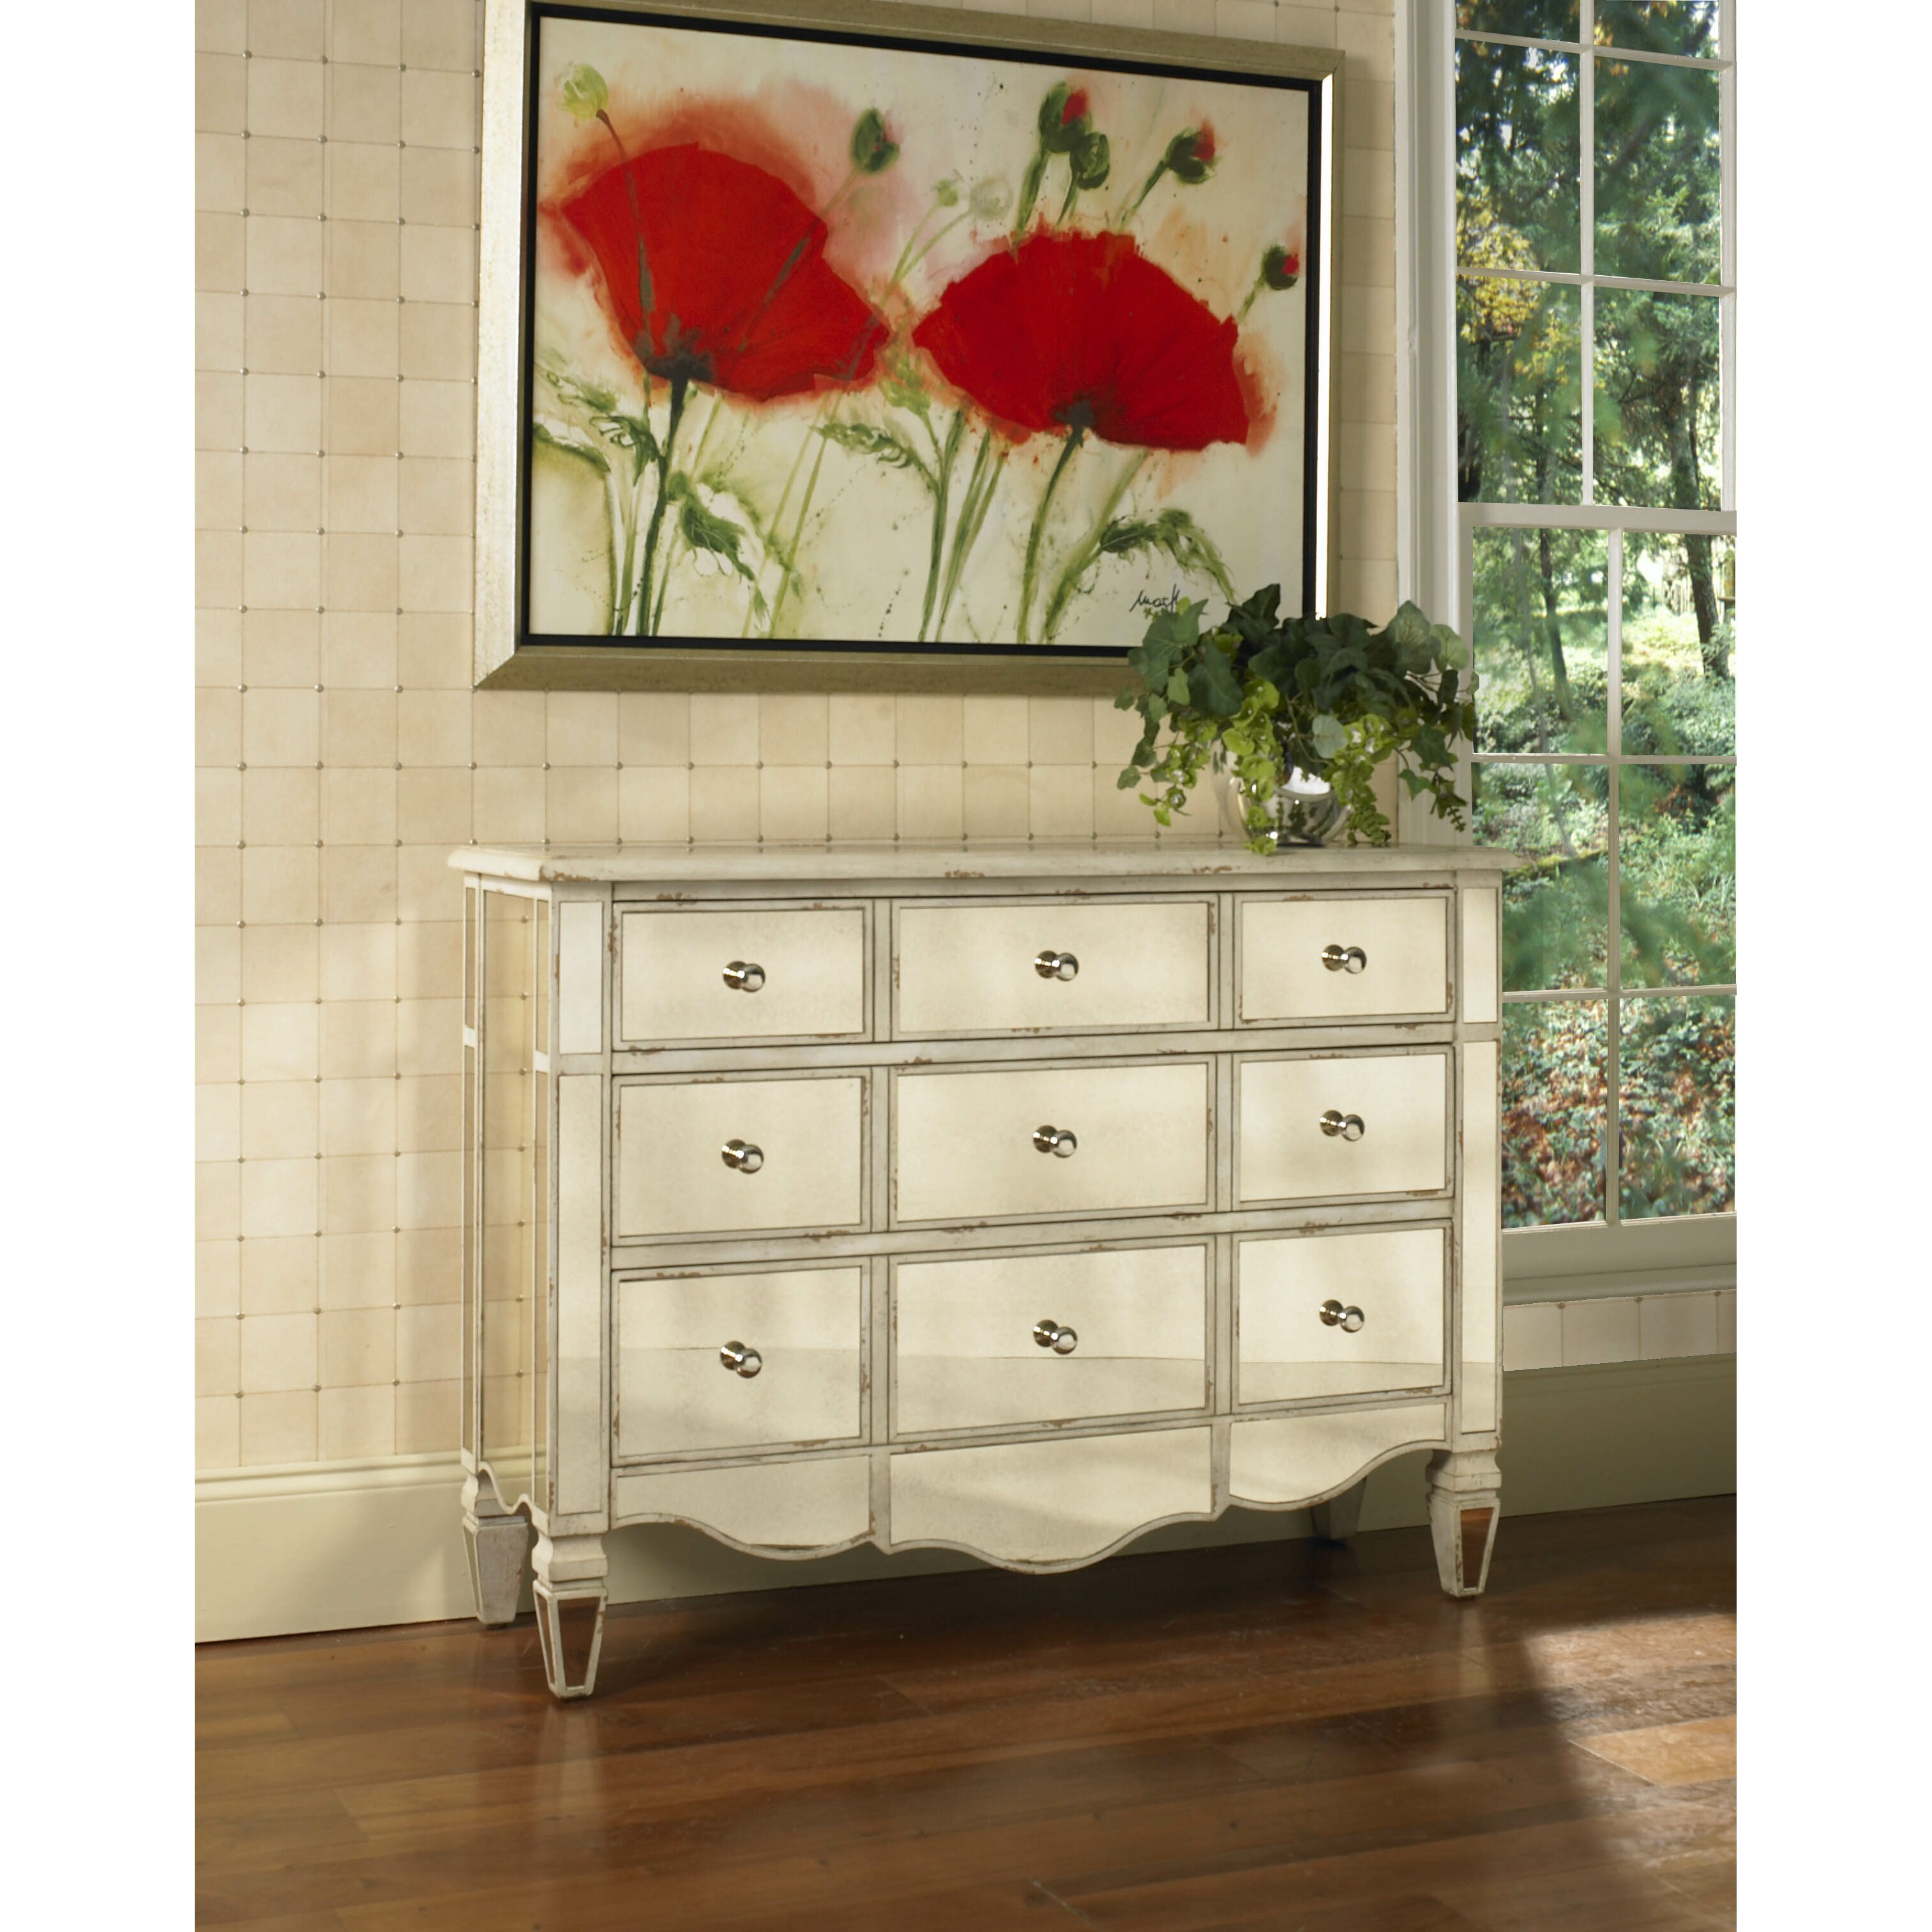 Radiance Mirrored 3 Drawer Accent Chest